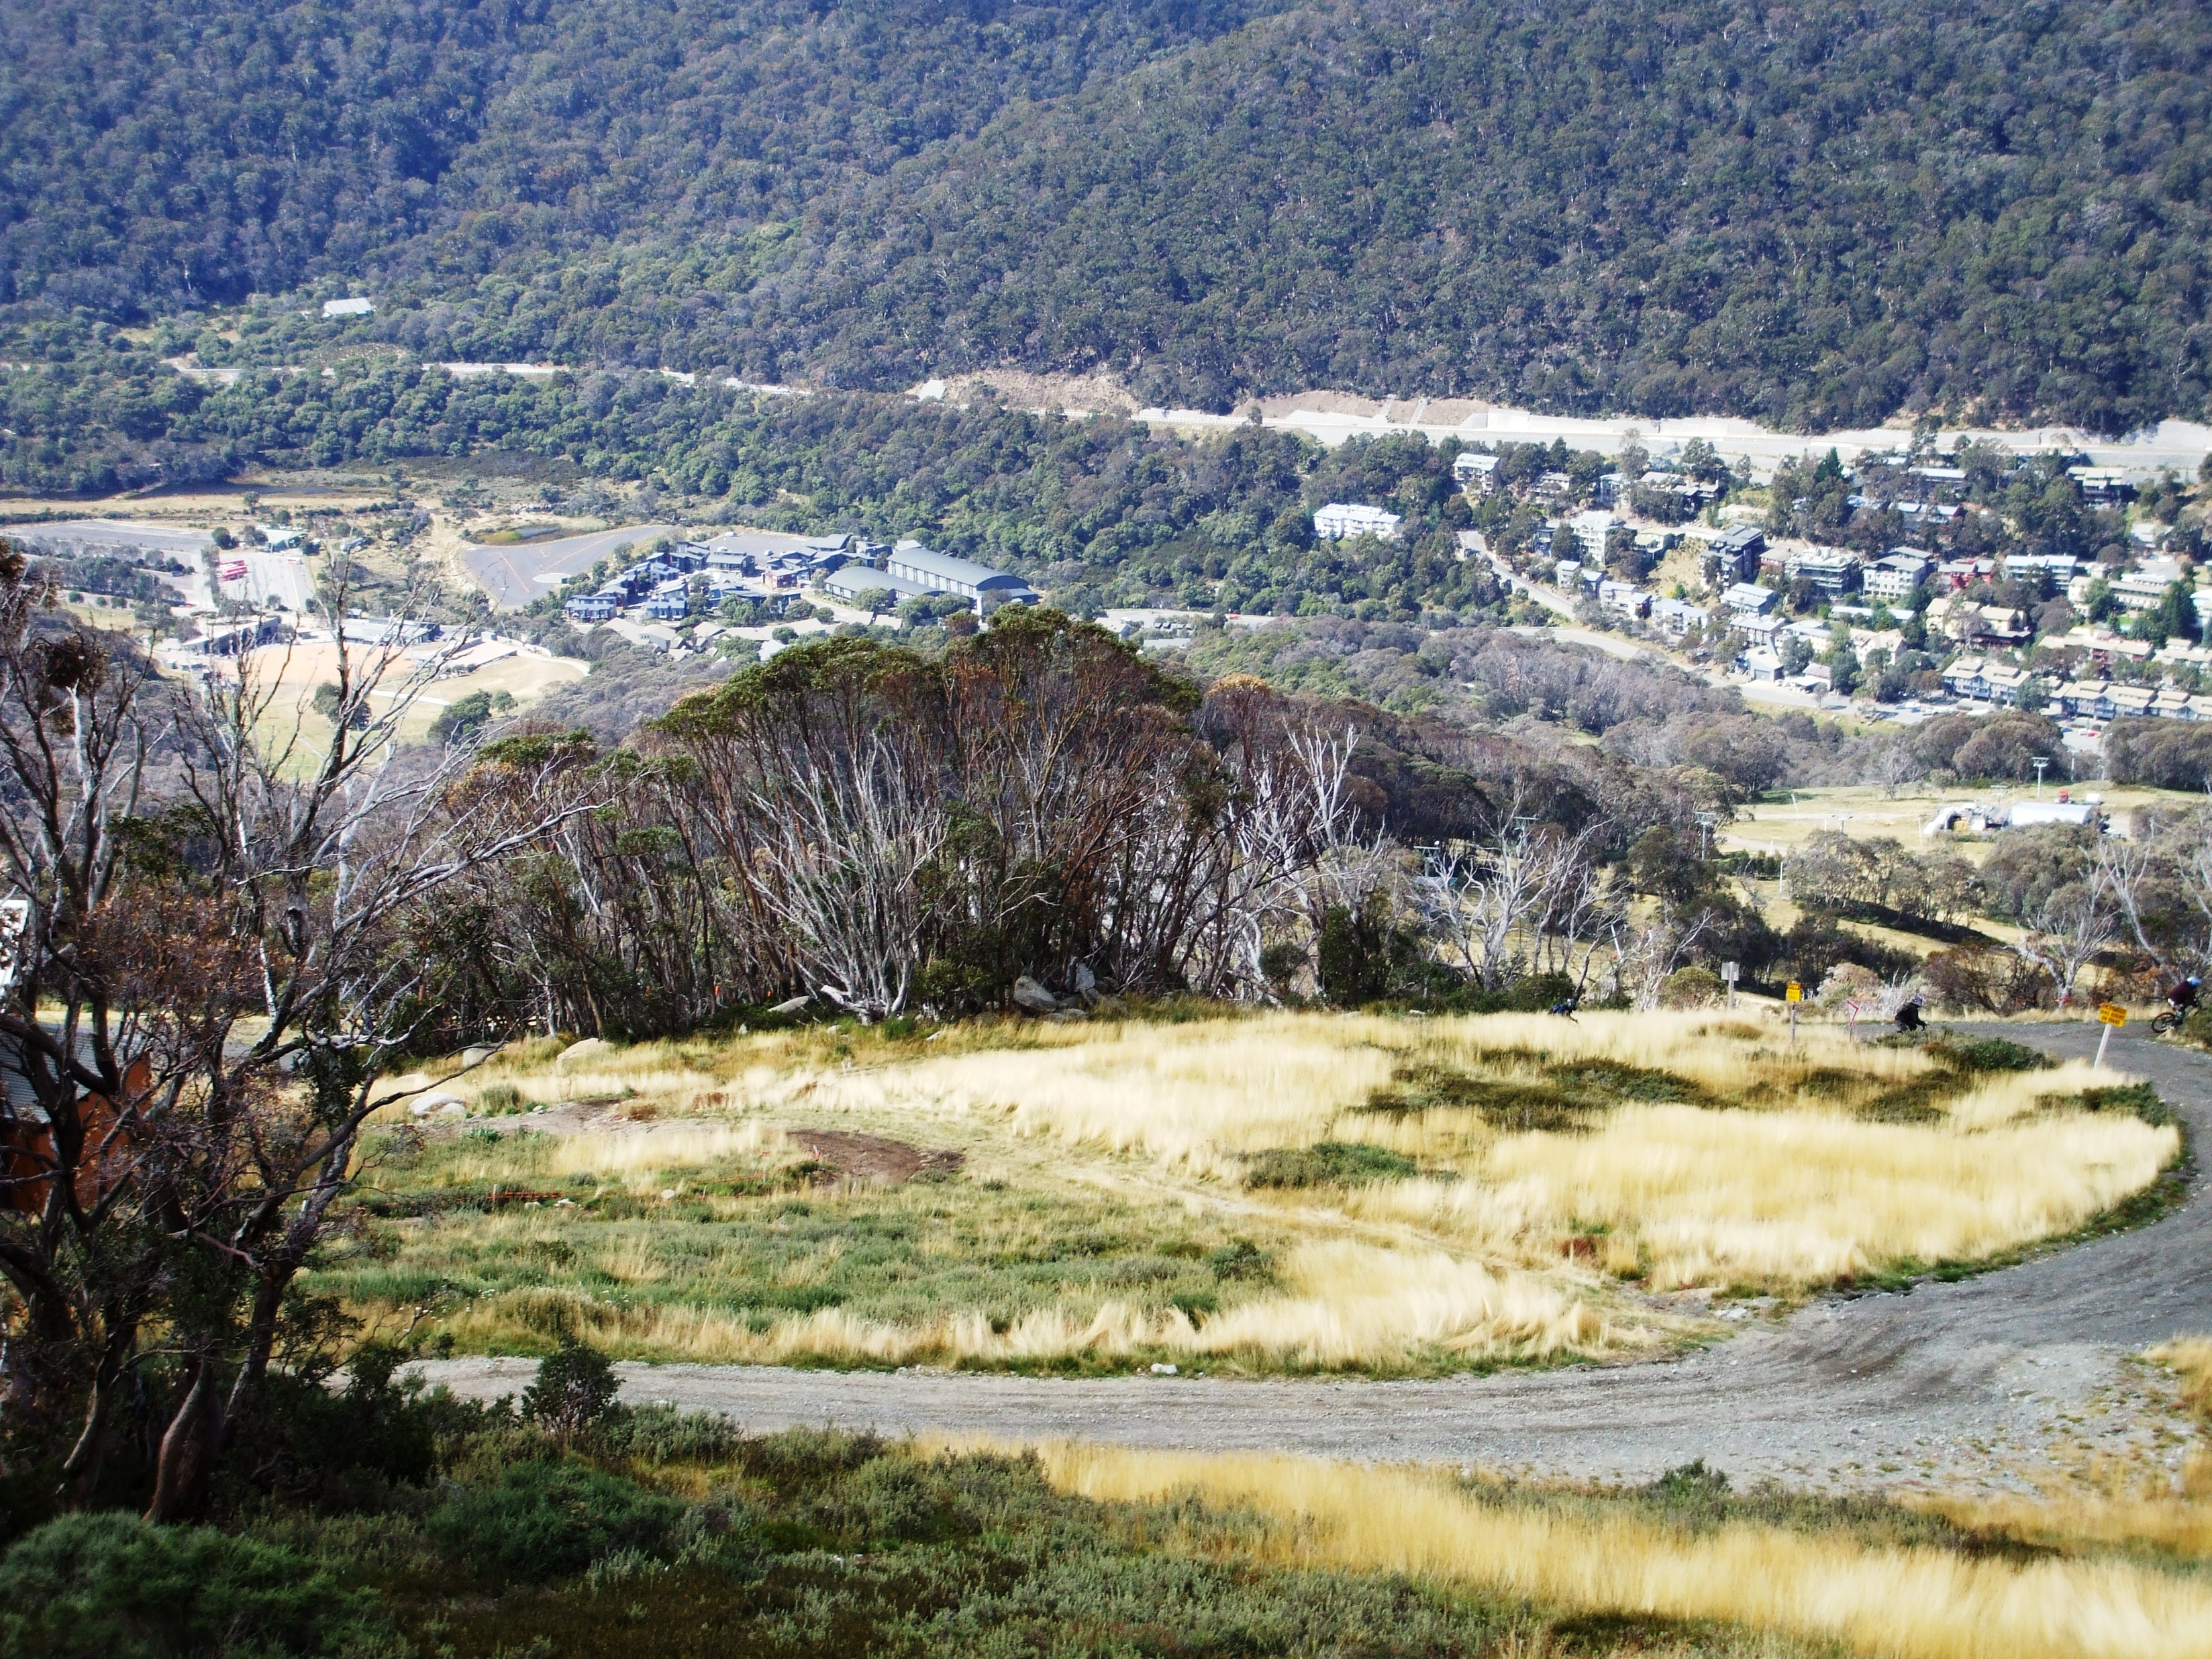 1997 Thredbo Landslide Wikipedia